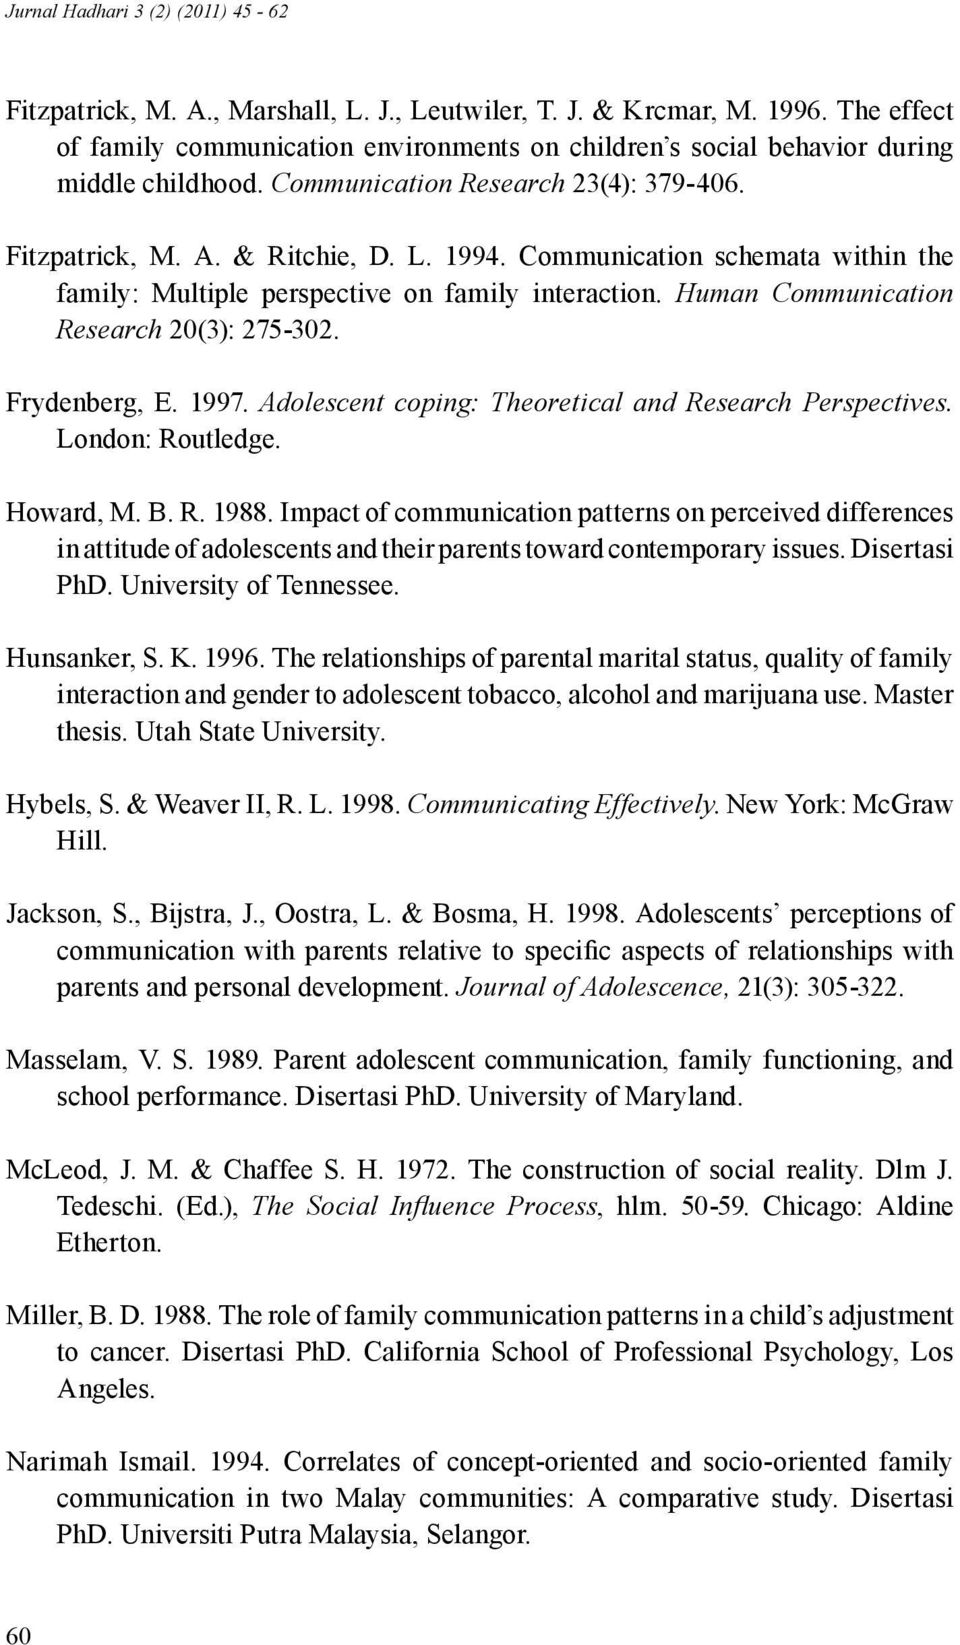 Human Communication Research 20(3): 275-302. Frydenberg, E. 1997. Adolescent coping: Theoretical and Research Perspectives. London: Routledge. Howard, M. B. R. 1988.